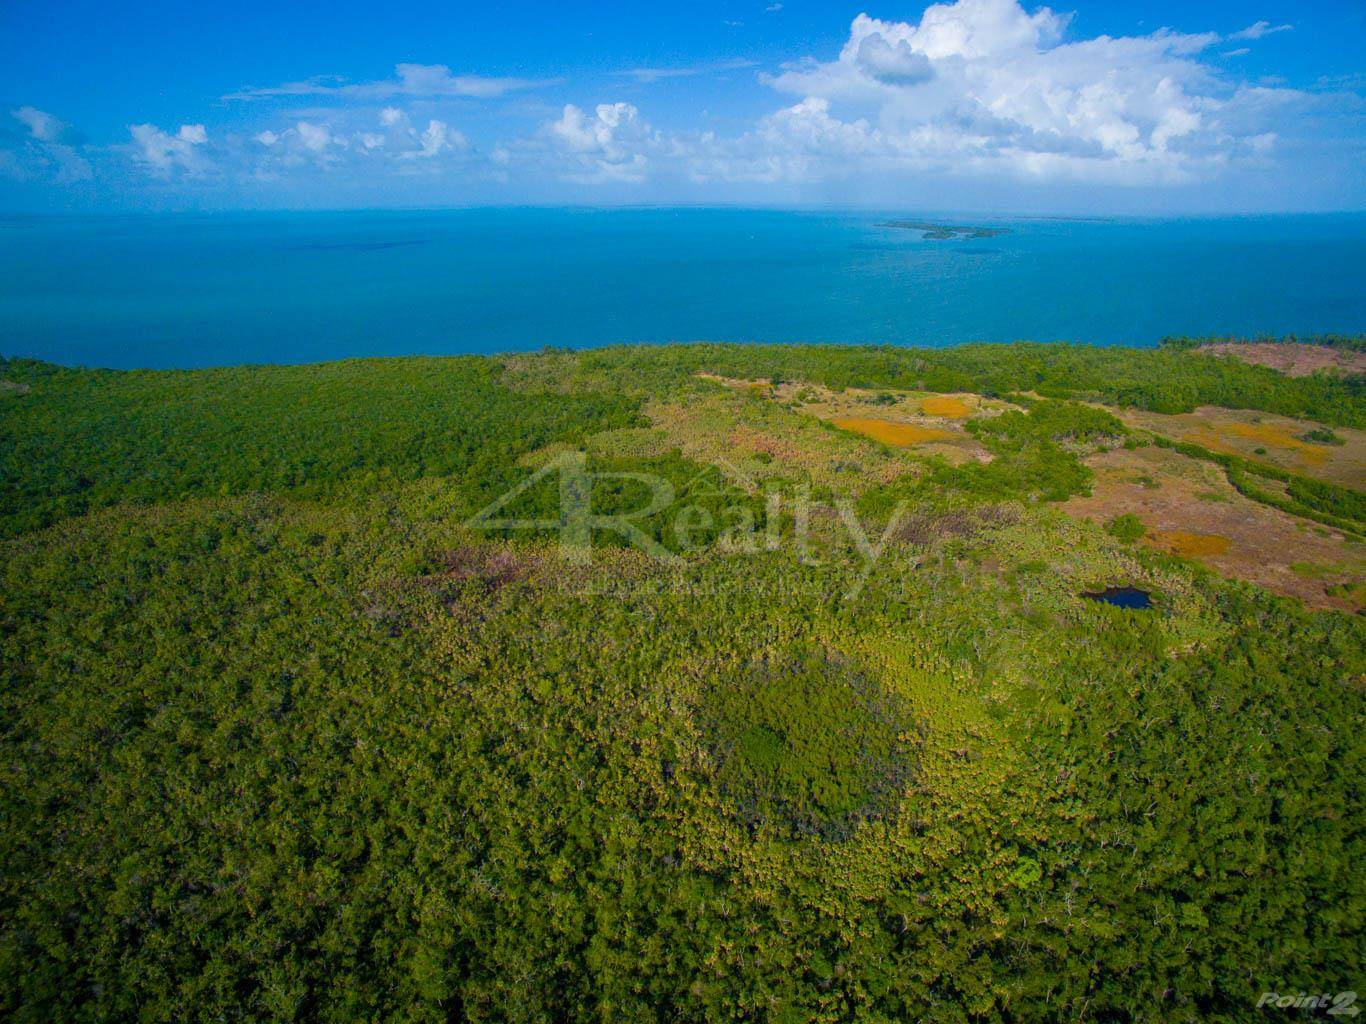 住居居住用、売買物件 建ての 133 Acres Seafront Philip Goldson Hwy., Ladyville, Belize ,NA  , ベリーズ